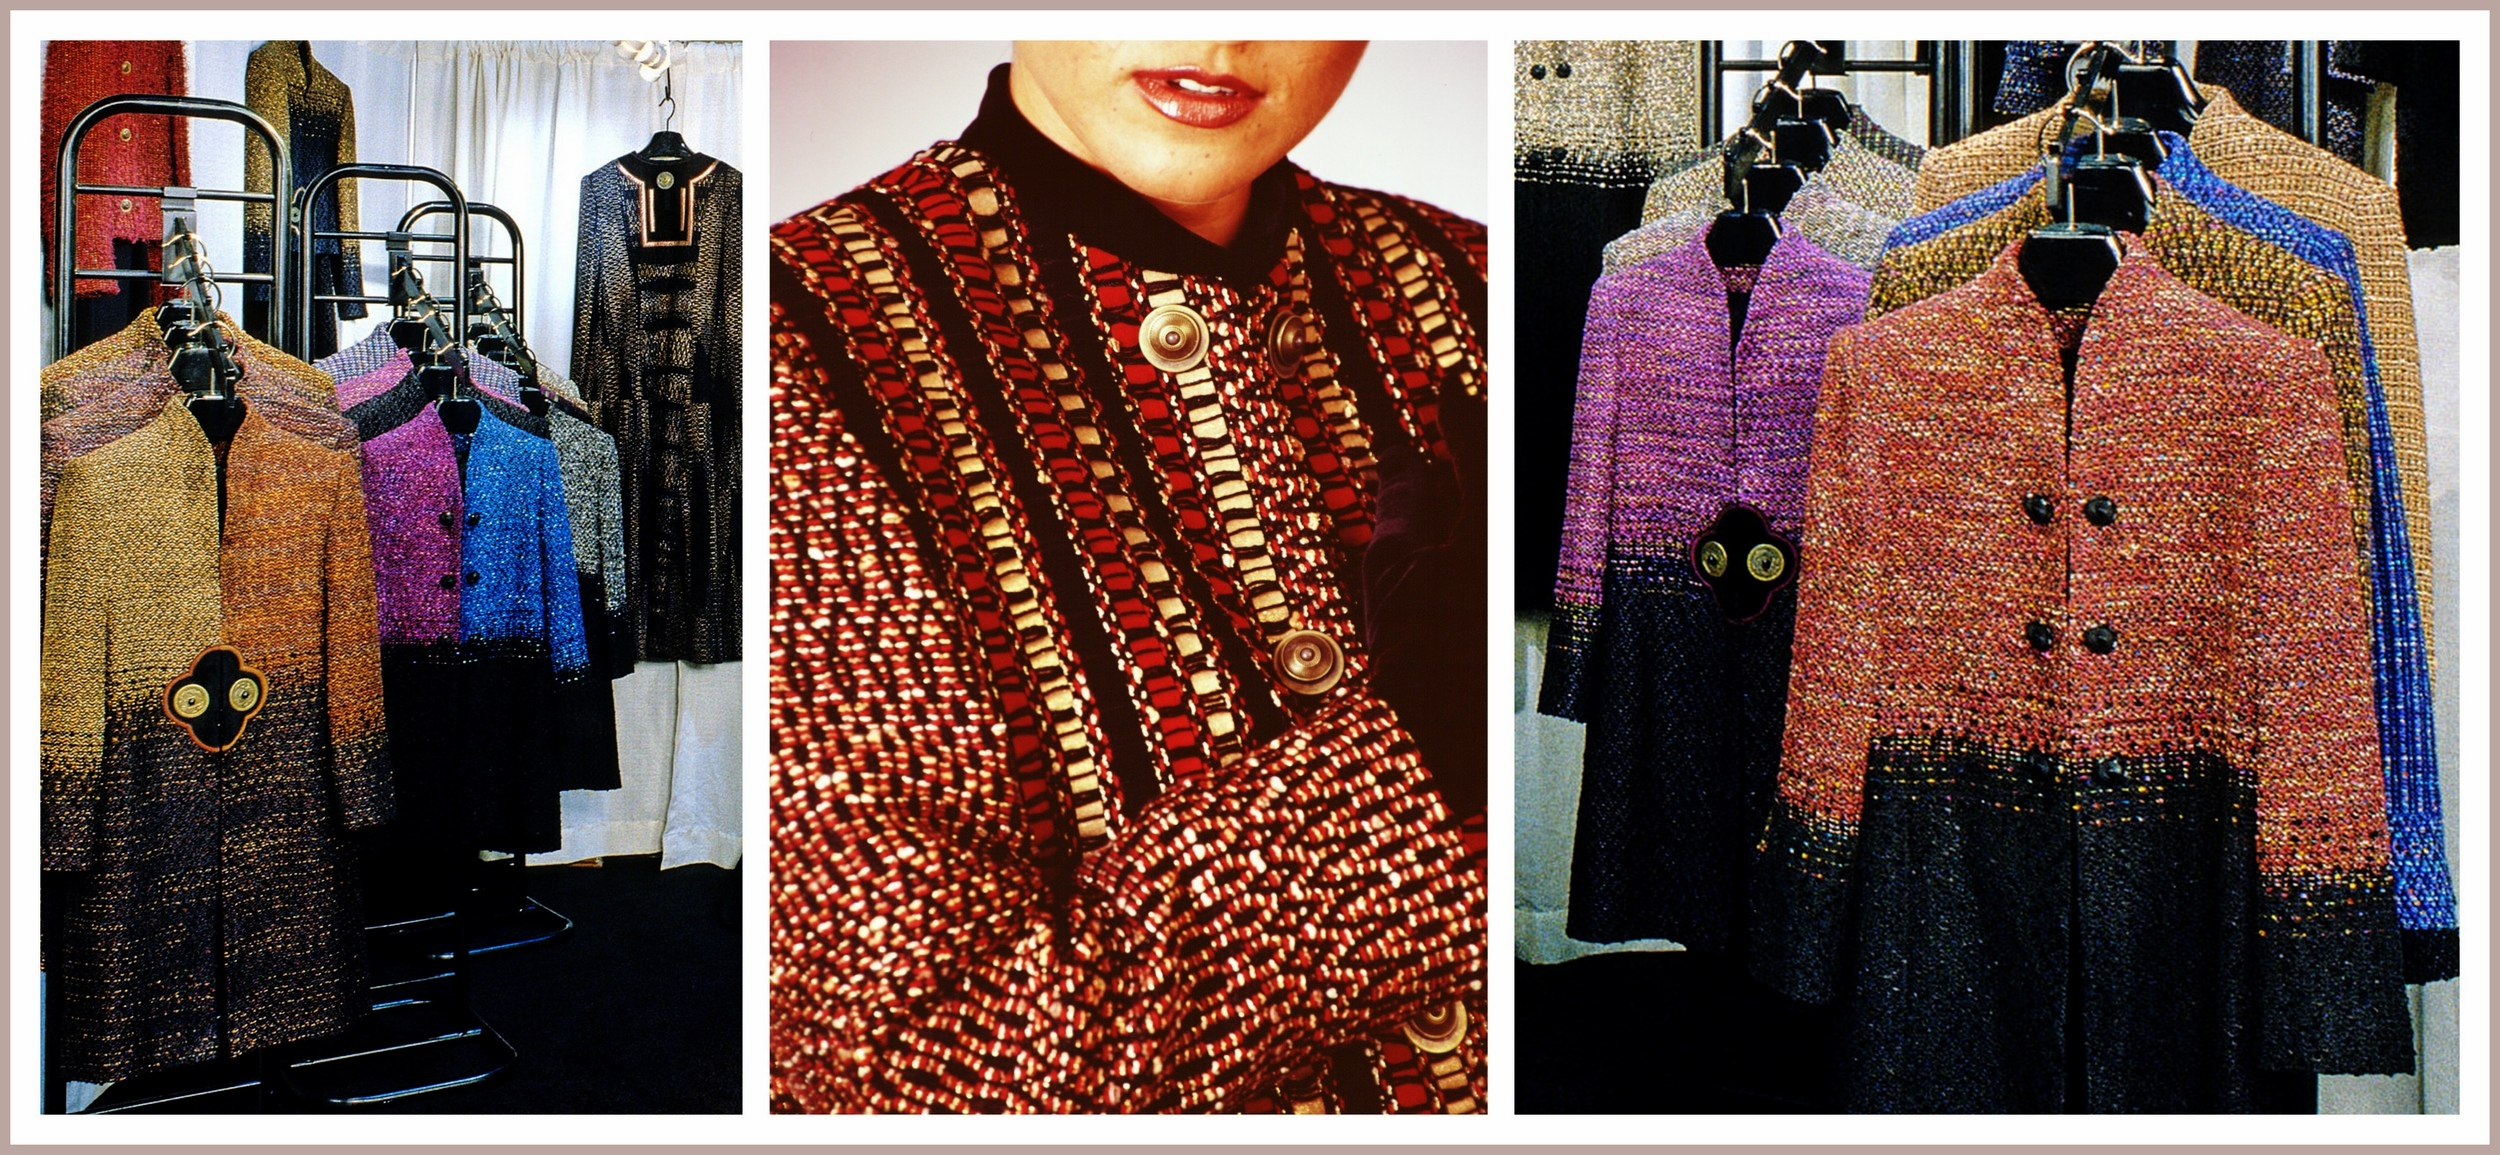 Kathleen's show display and a close look at a Woven Leather Jacket.